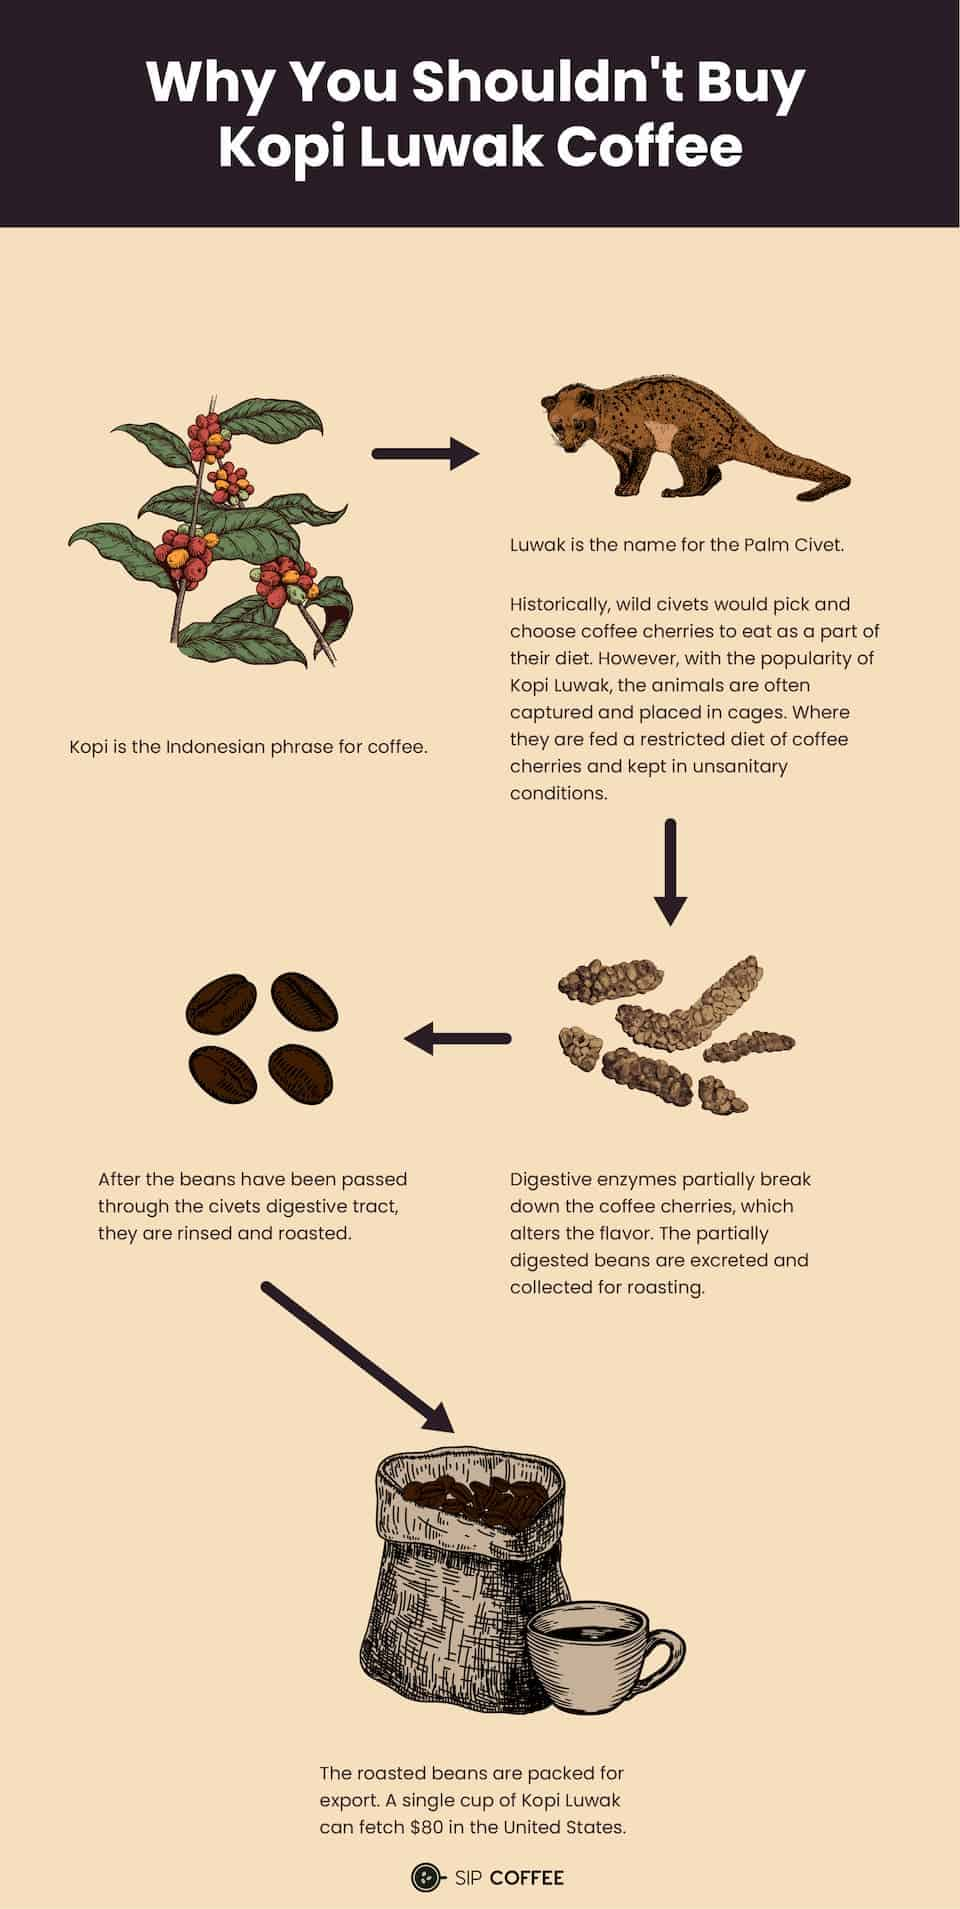 how Kopi Luwak coffee is made